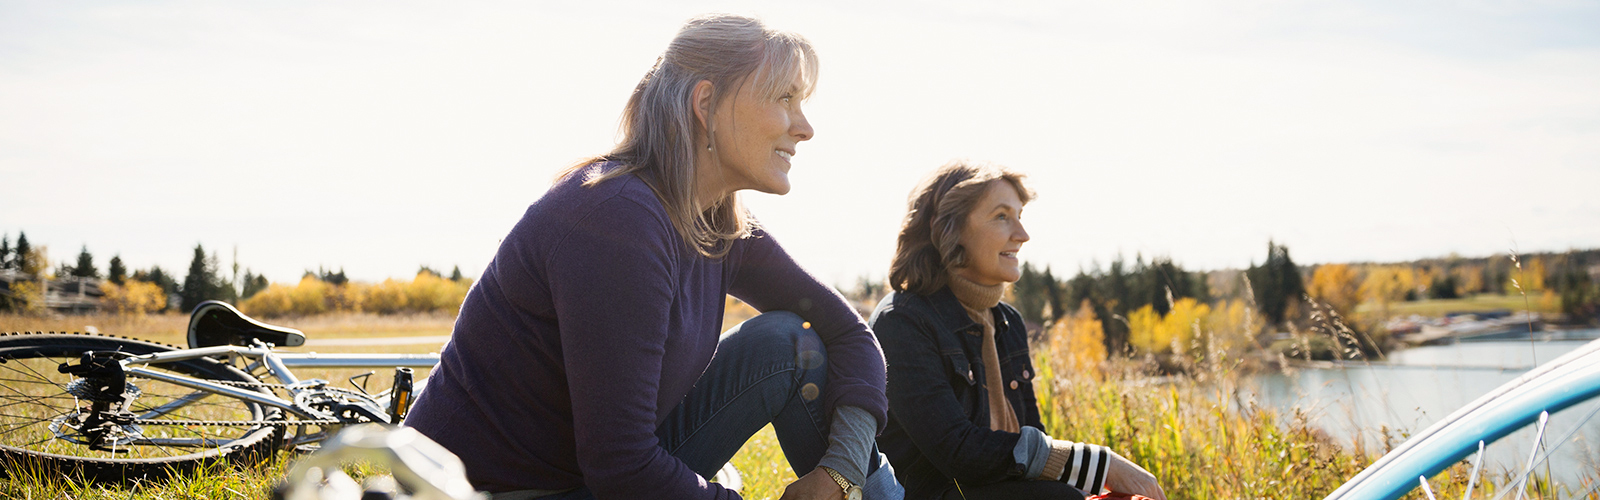 Two women sitting by water with a bicycle behind them